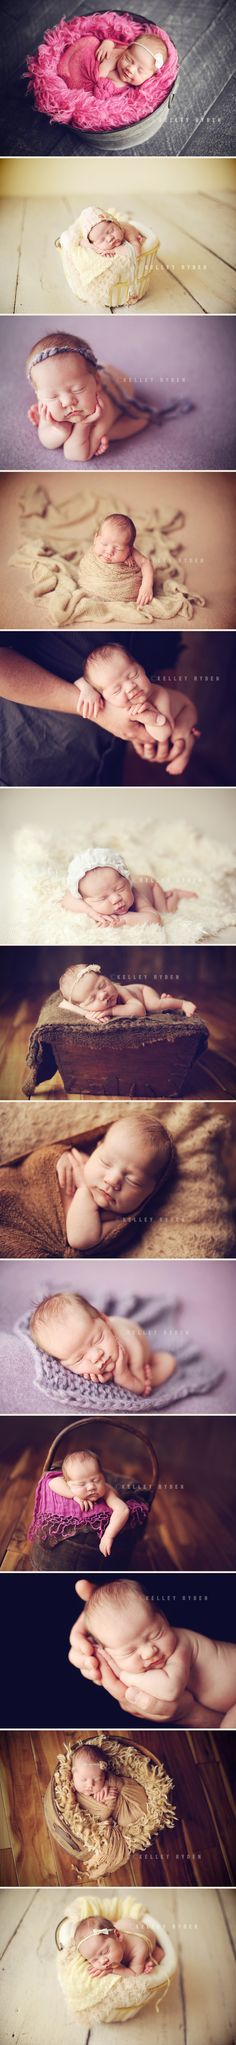 newborn girl styling and posing - foto by Kelley Ryden (my fav newborn photographer) Baby Poses, Newborn Poses, Newborn Shoot, Newborn Baby Photography, Love Photography, Newborn Photographer, Children Photography, Newborns, Newborn Fotografia